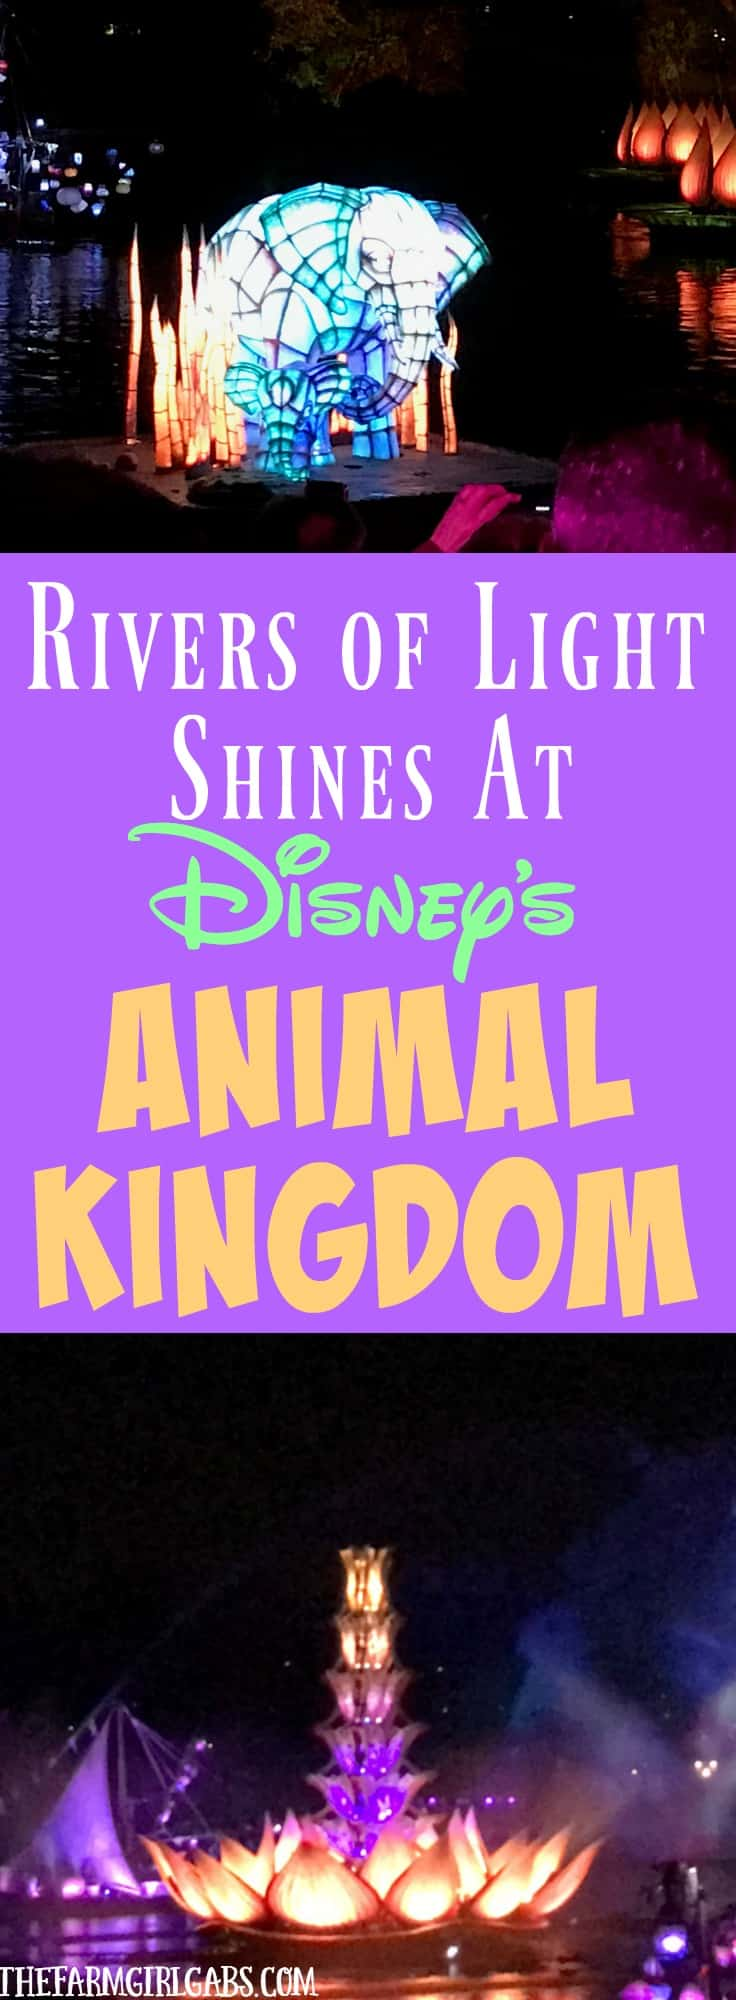 Rivers of Light Shines Bright At Animal Kingdom. This nighttime show at Walt Disney World embraces the magic of nature. #DisneySMMC